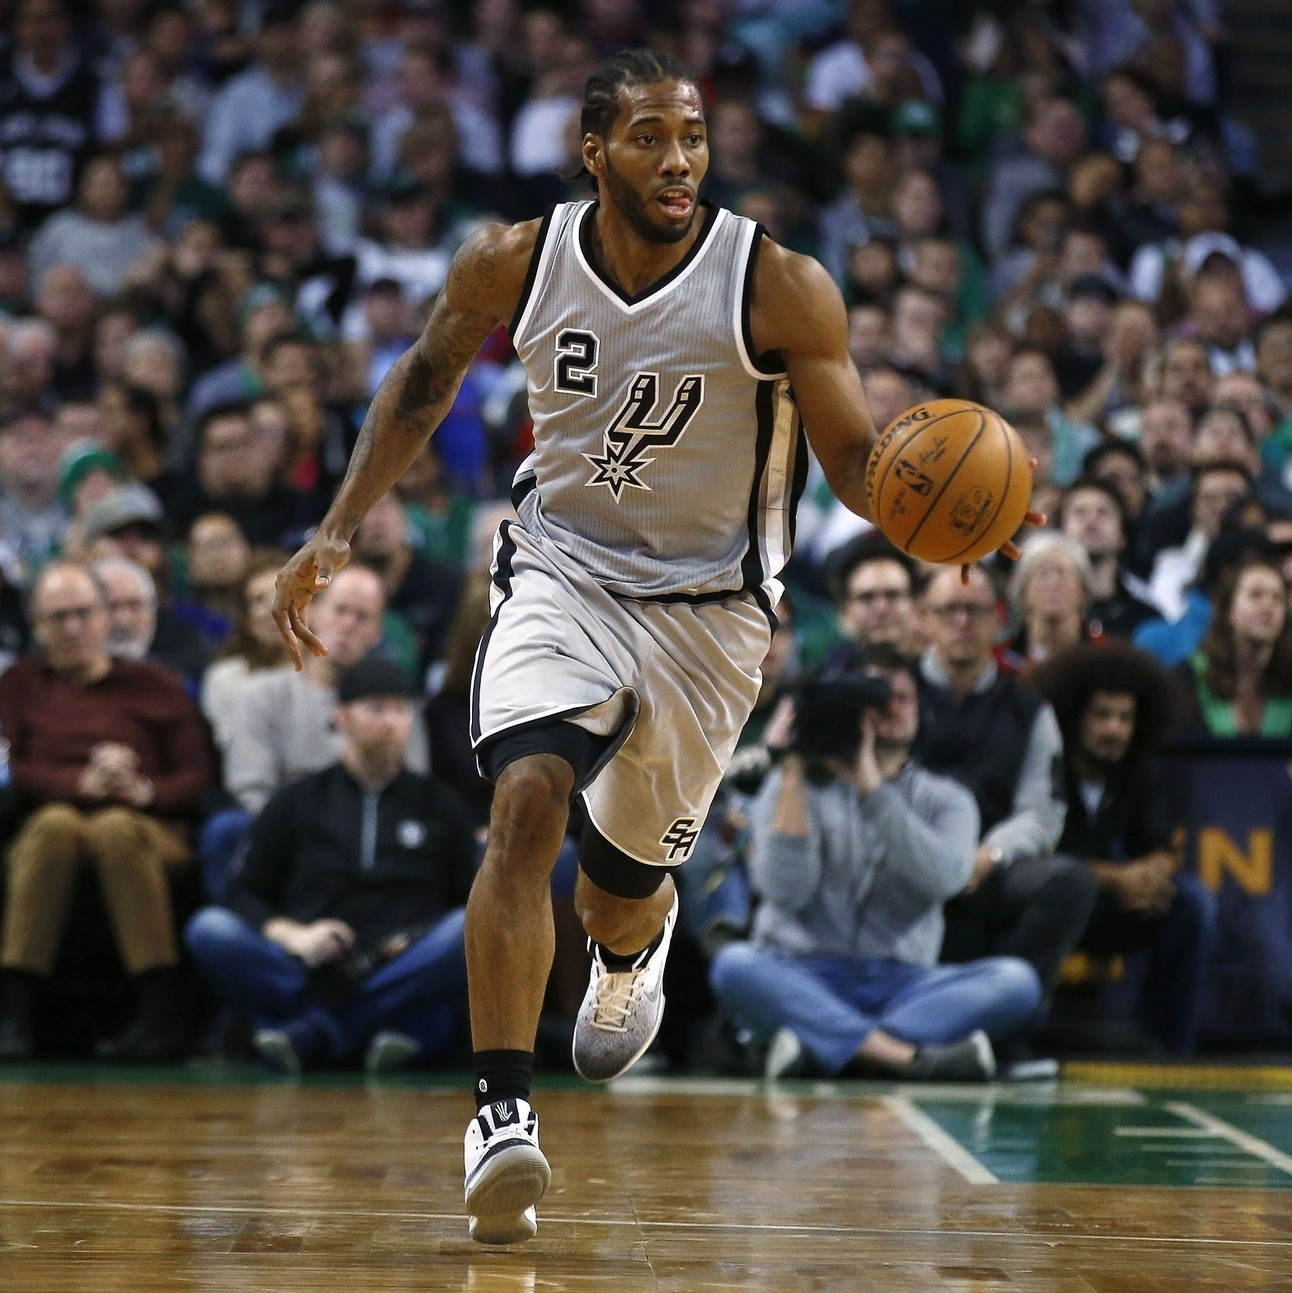 On-offense-and-defense-can-kawhi-leonard-have-it-all-1480355972.jpg?crop=0